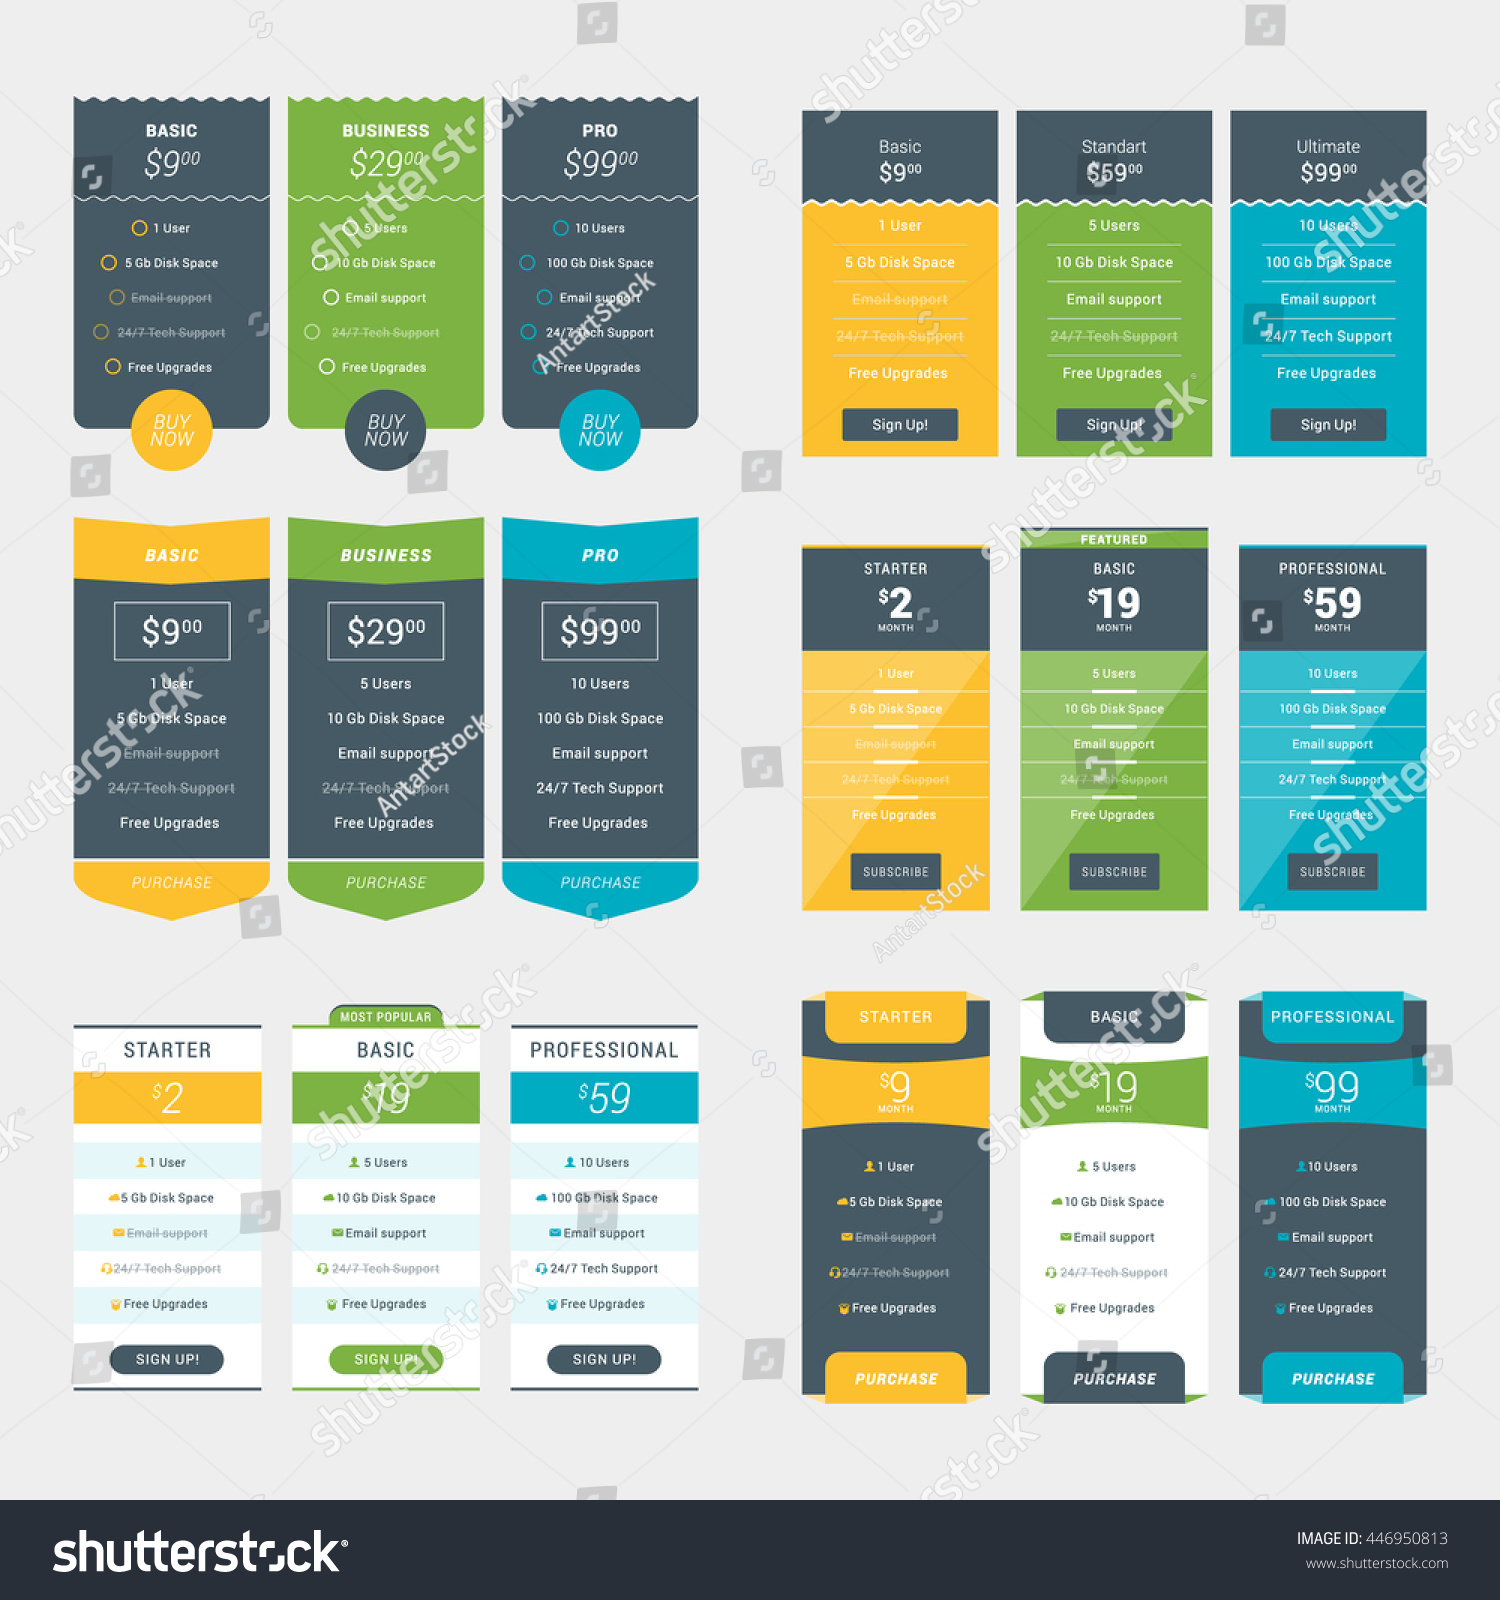 Subscription pricing table ui template best free for Table design templates in html